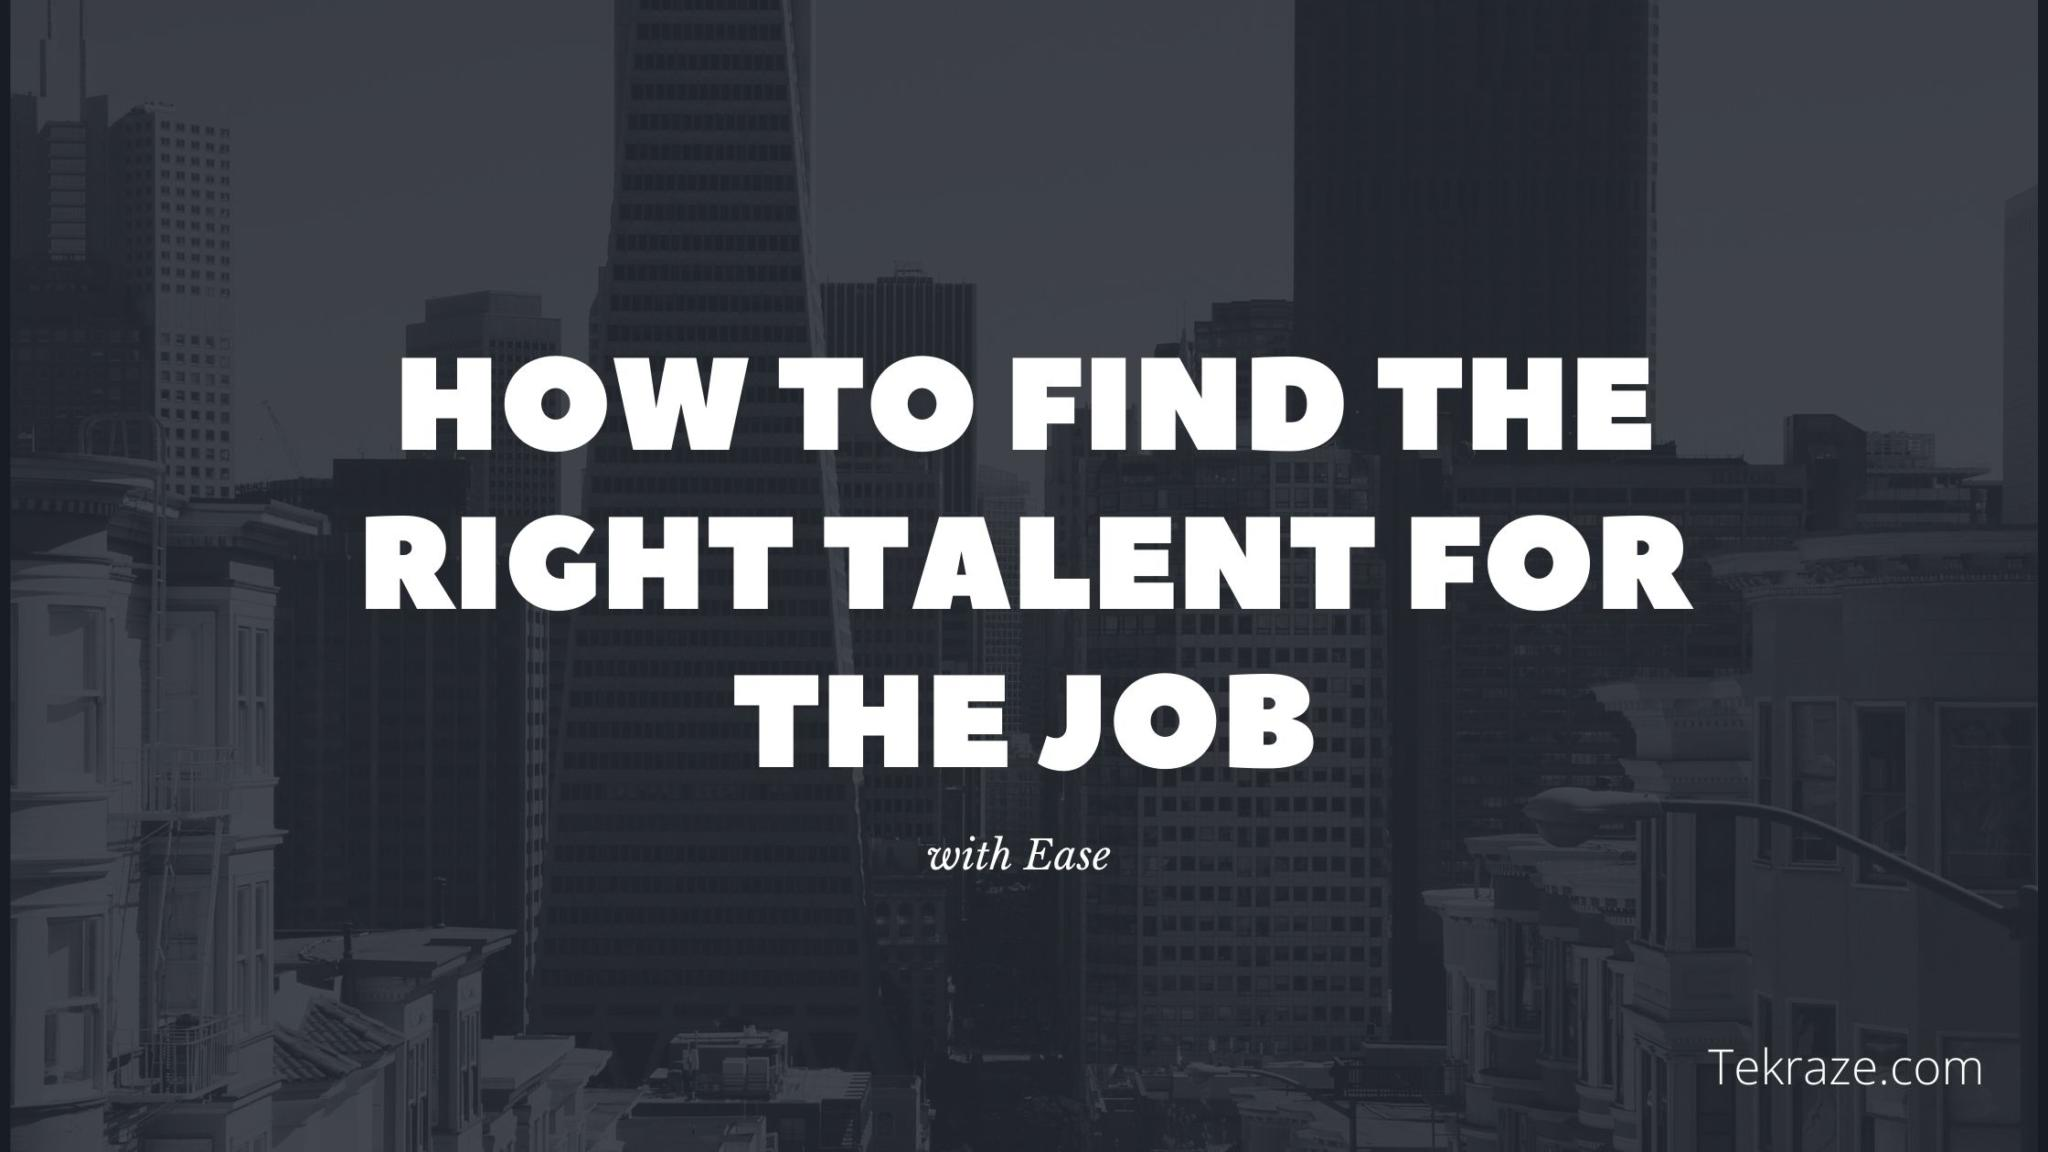 How to Find the Right Talent for the Job